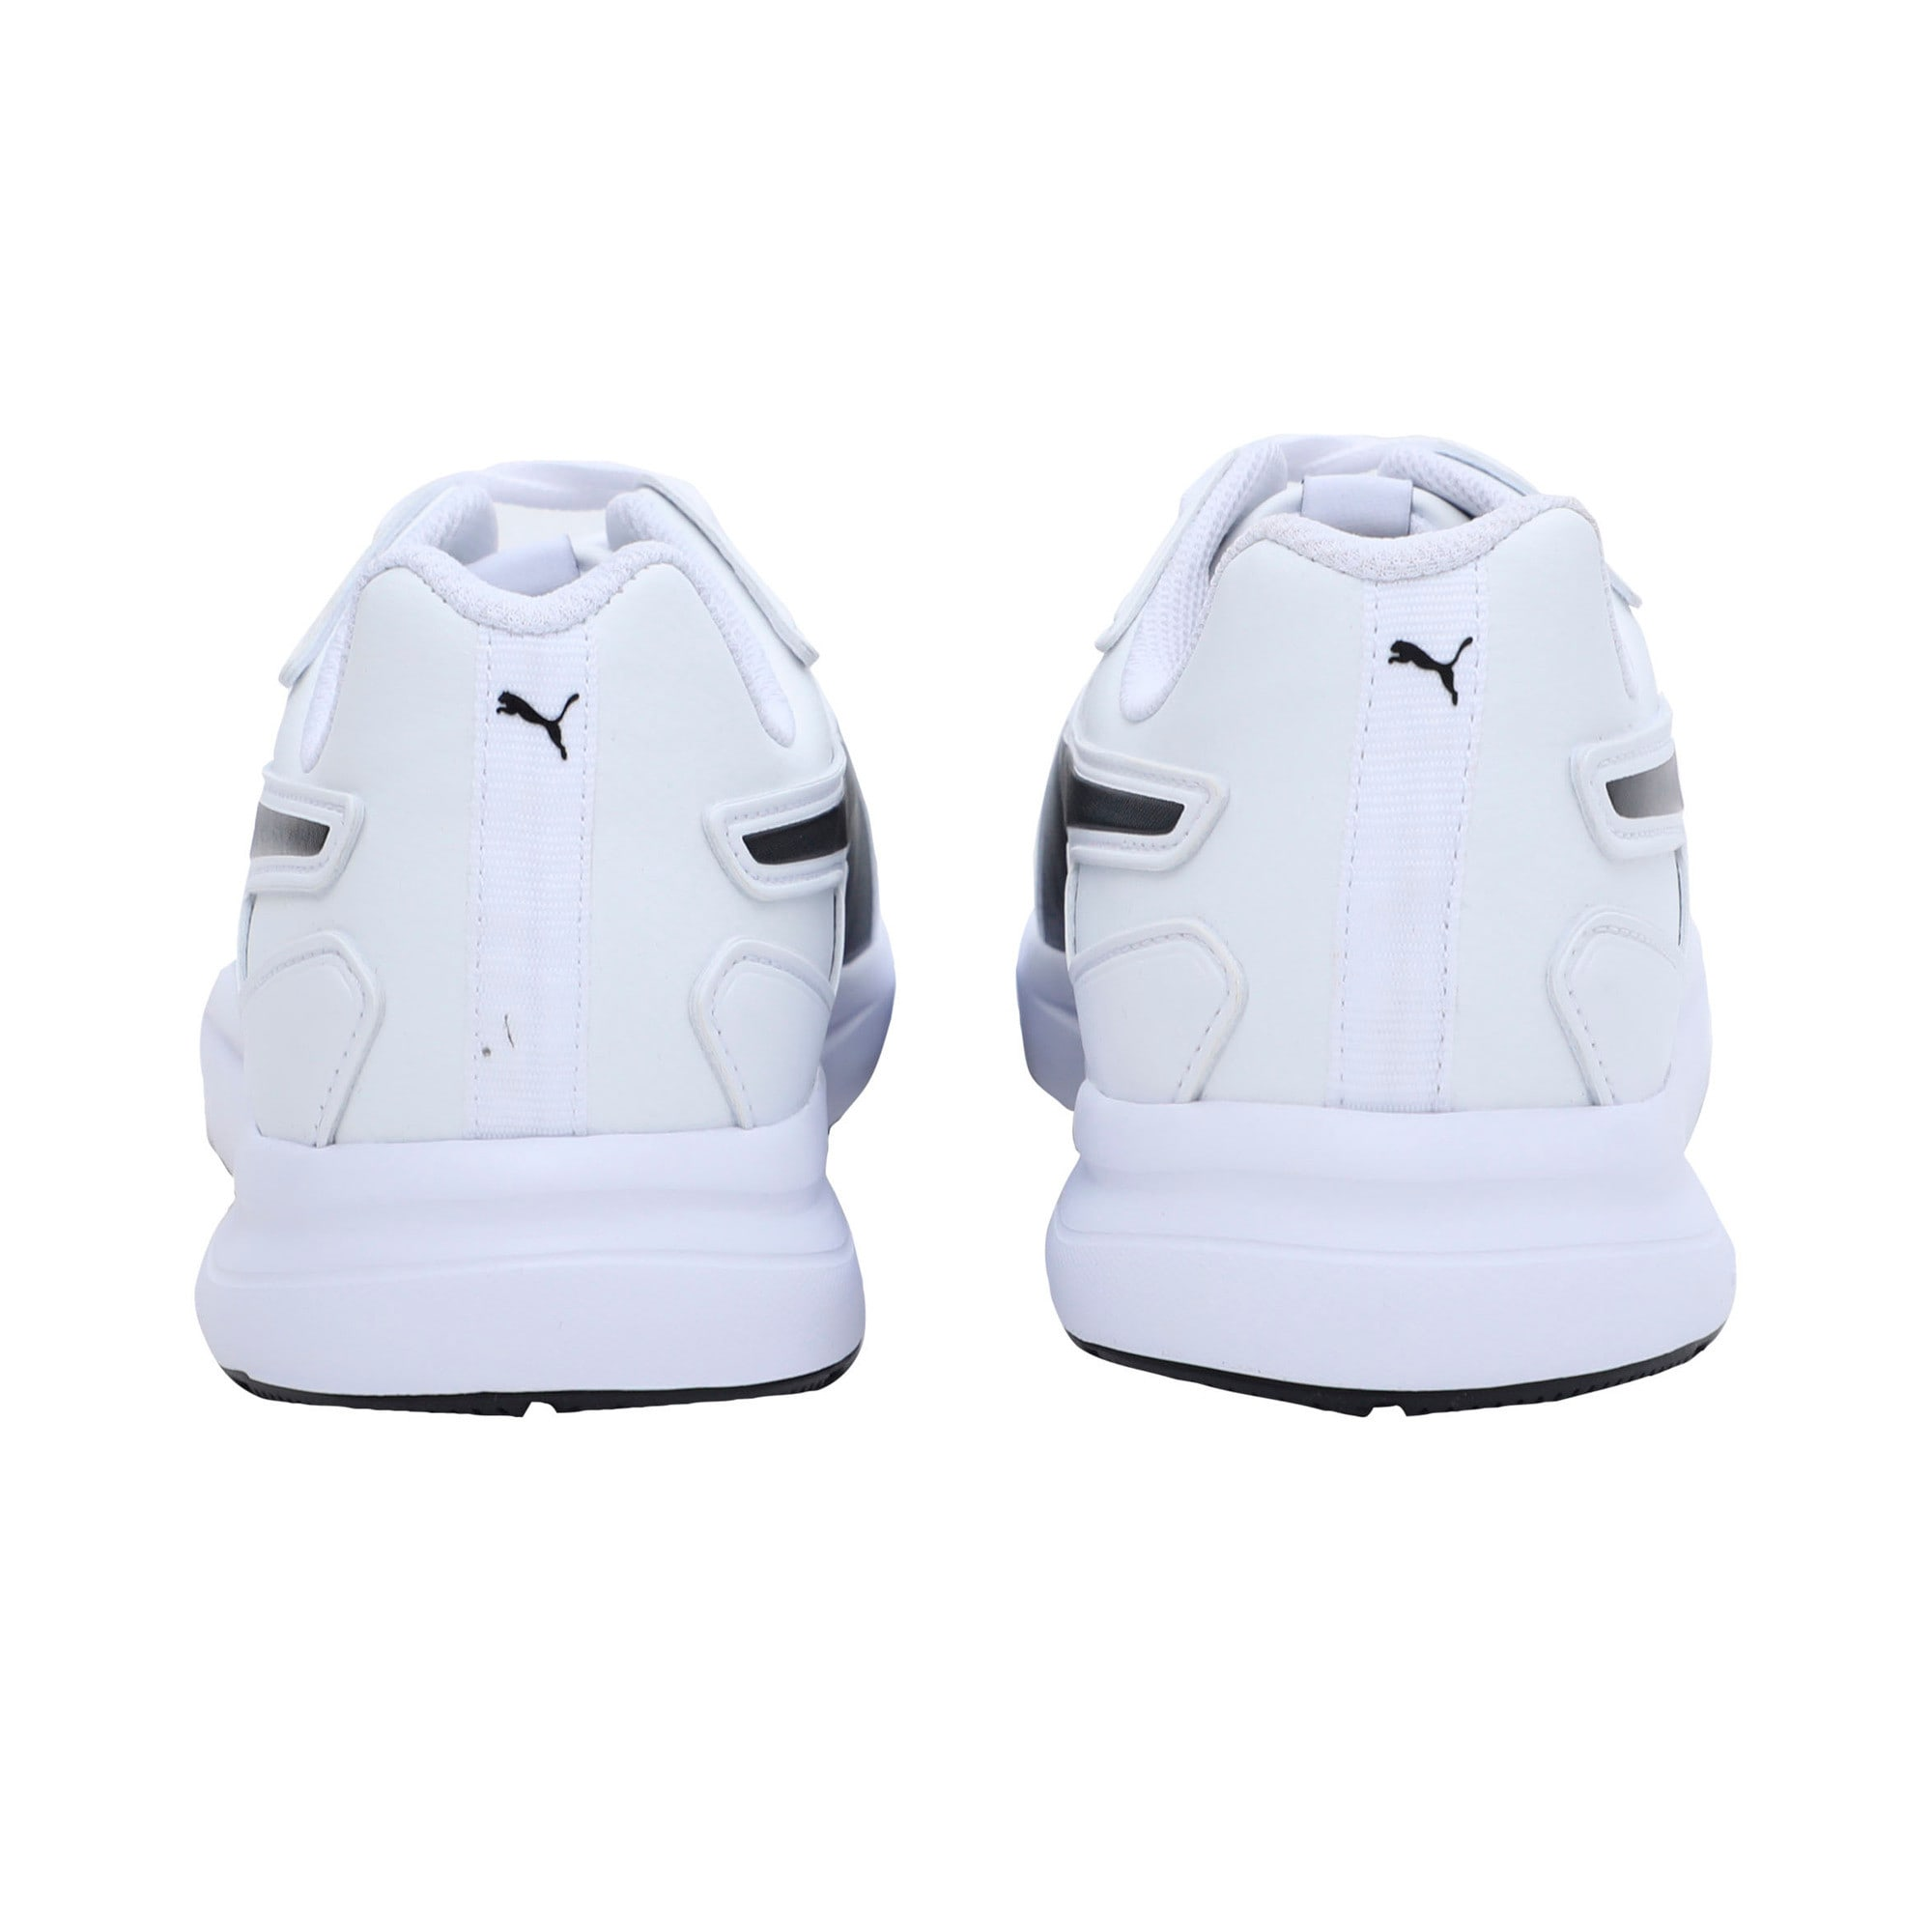 Thumbnail 3 of Escaper SL Trainers, Puma White-Puma Black, medium-IND